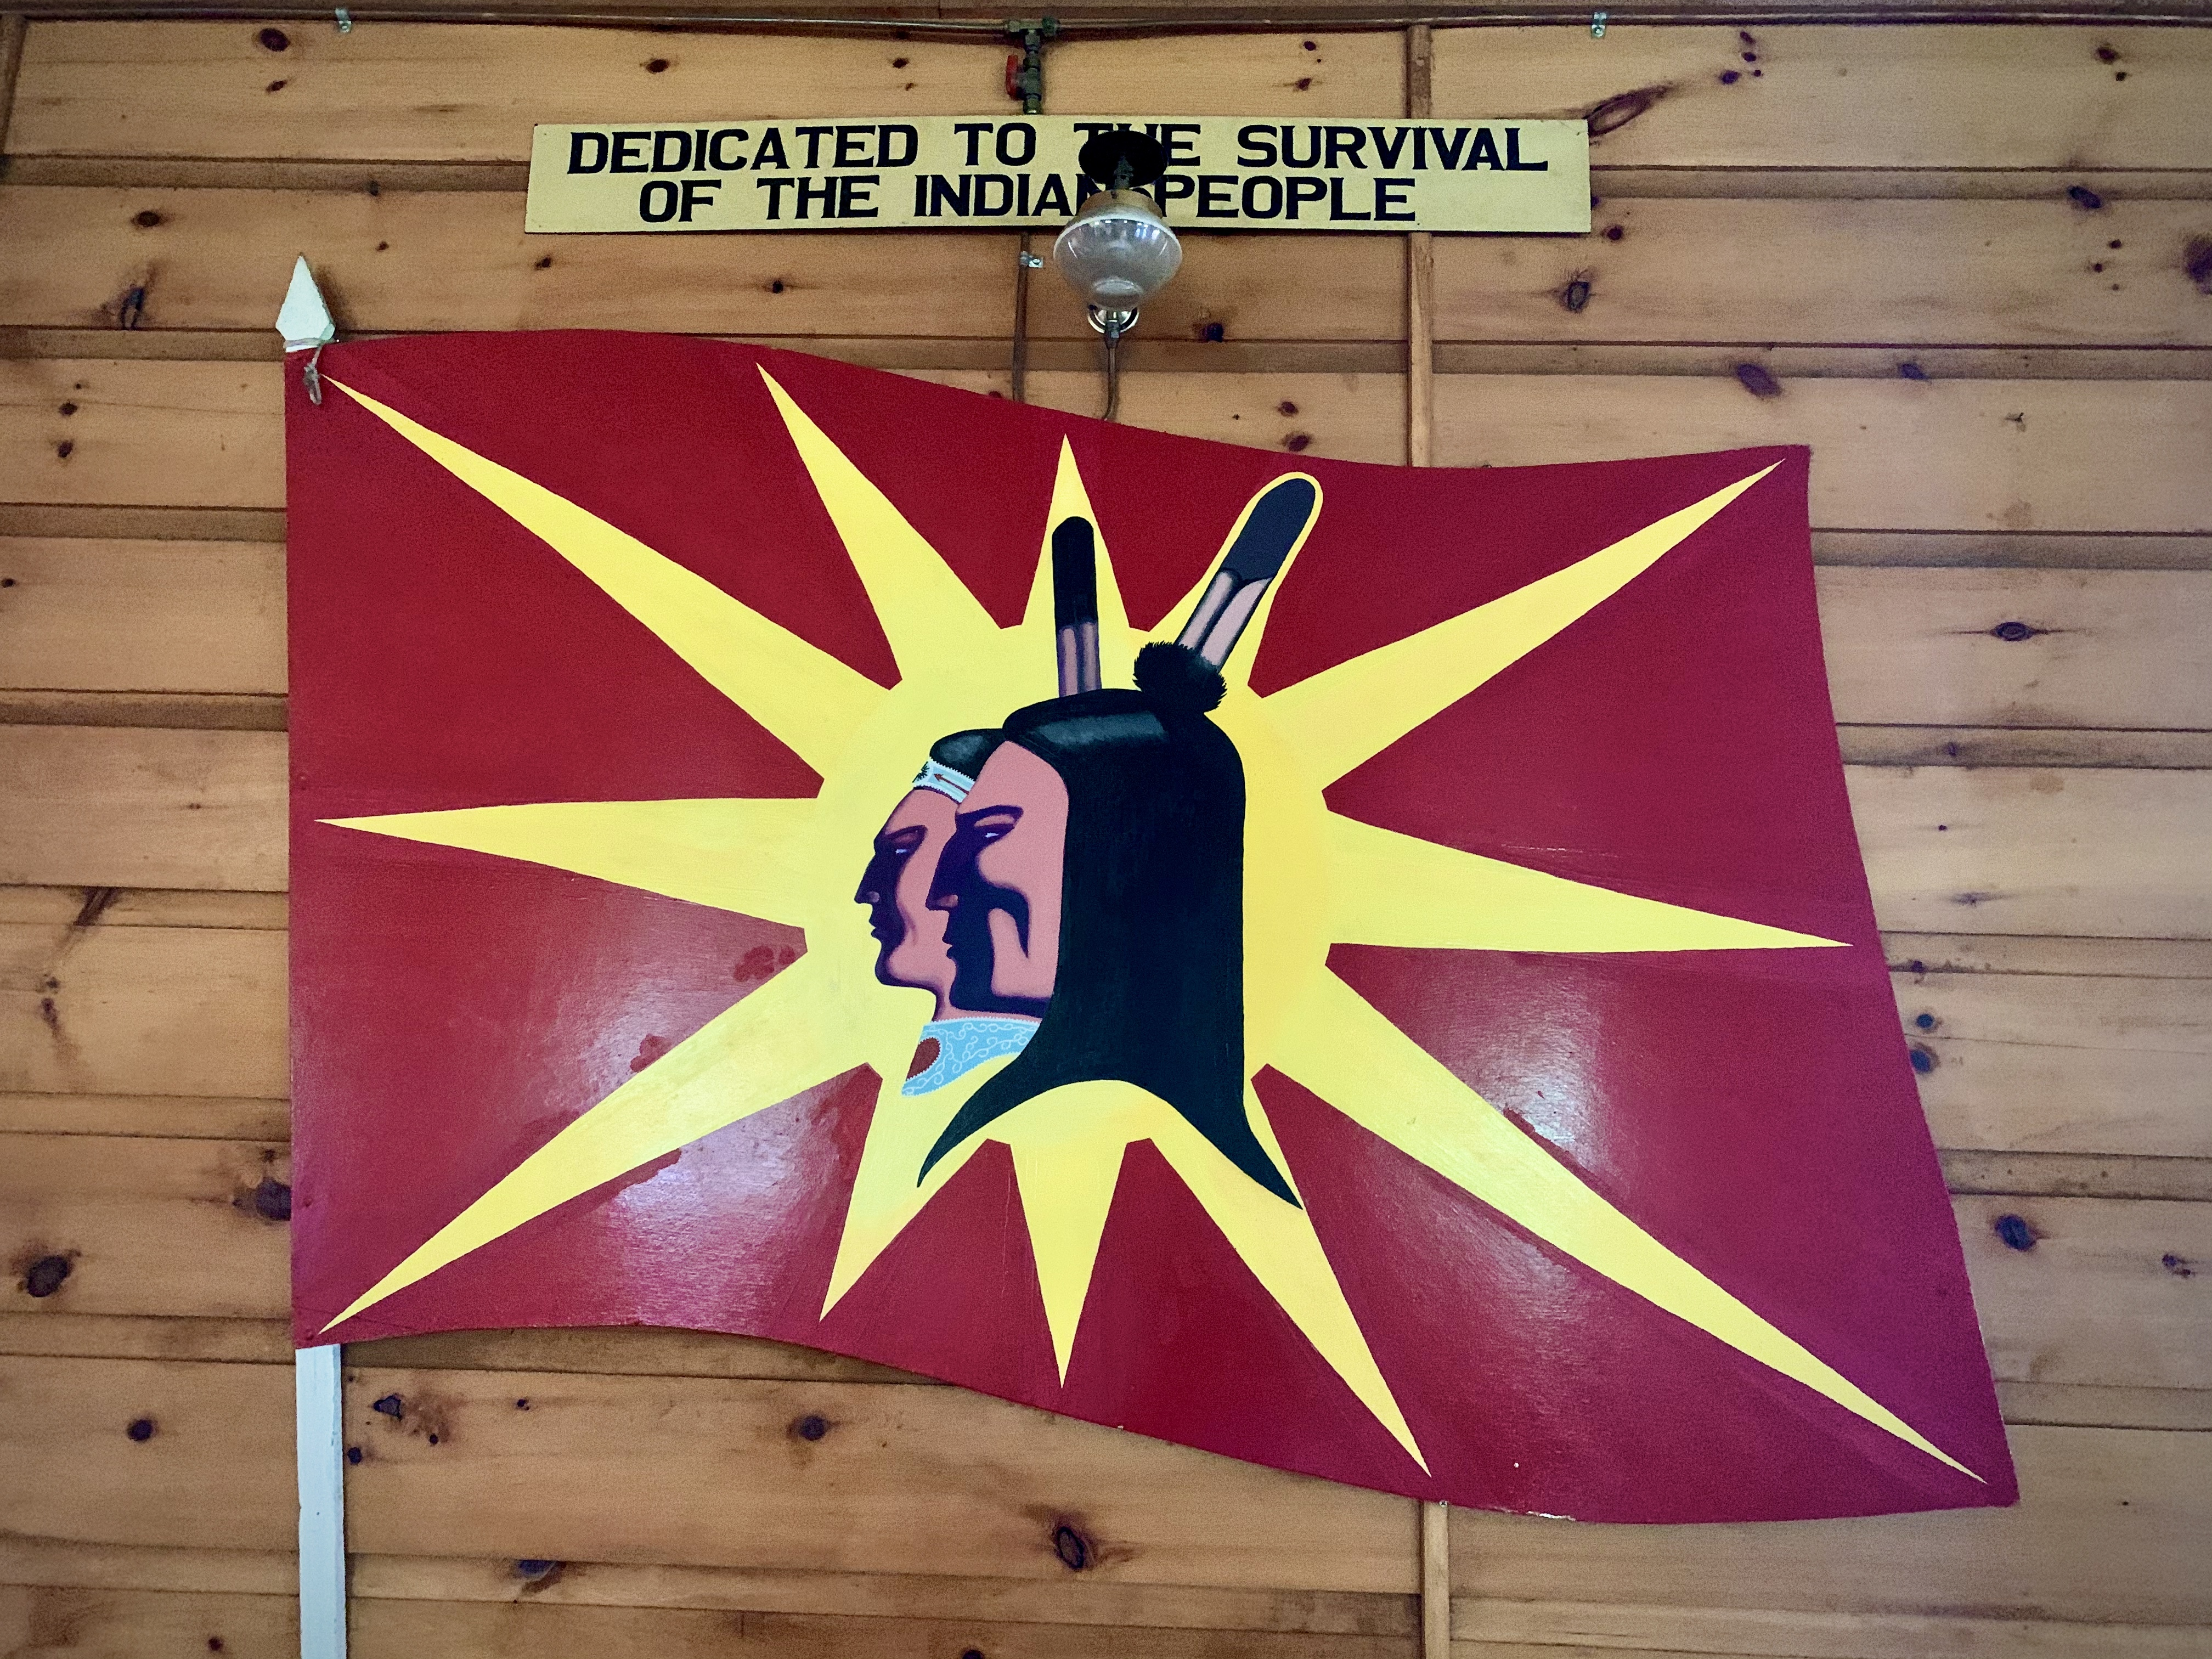 One of Hall's last paintings, of a new version of the warrior flag, hangs inside Kahnawake's Kanien'kehà:ka Nation Longhouse. (Jessica Deer/CBC)